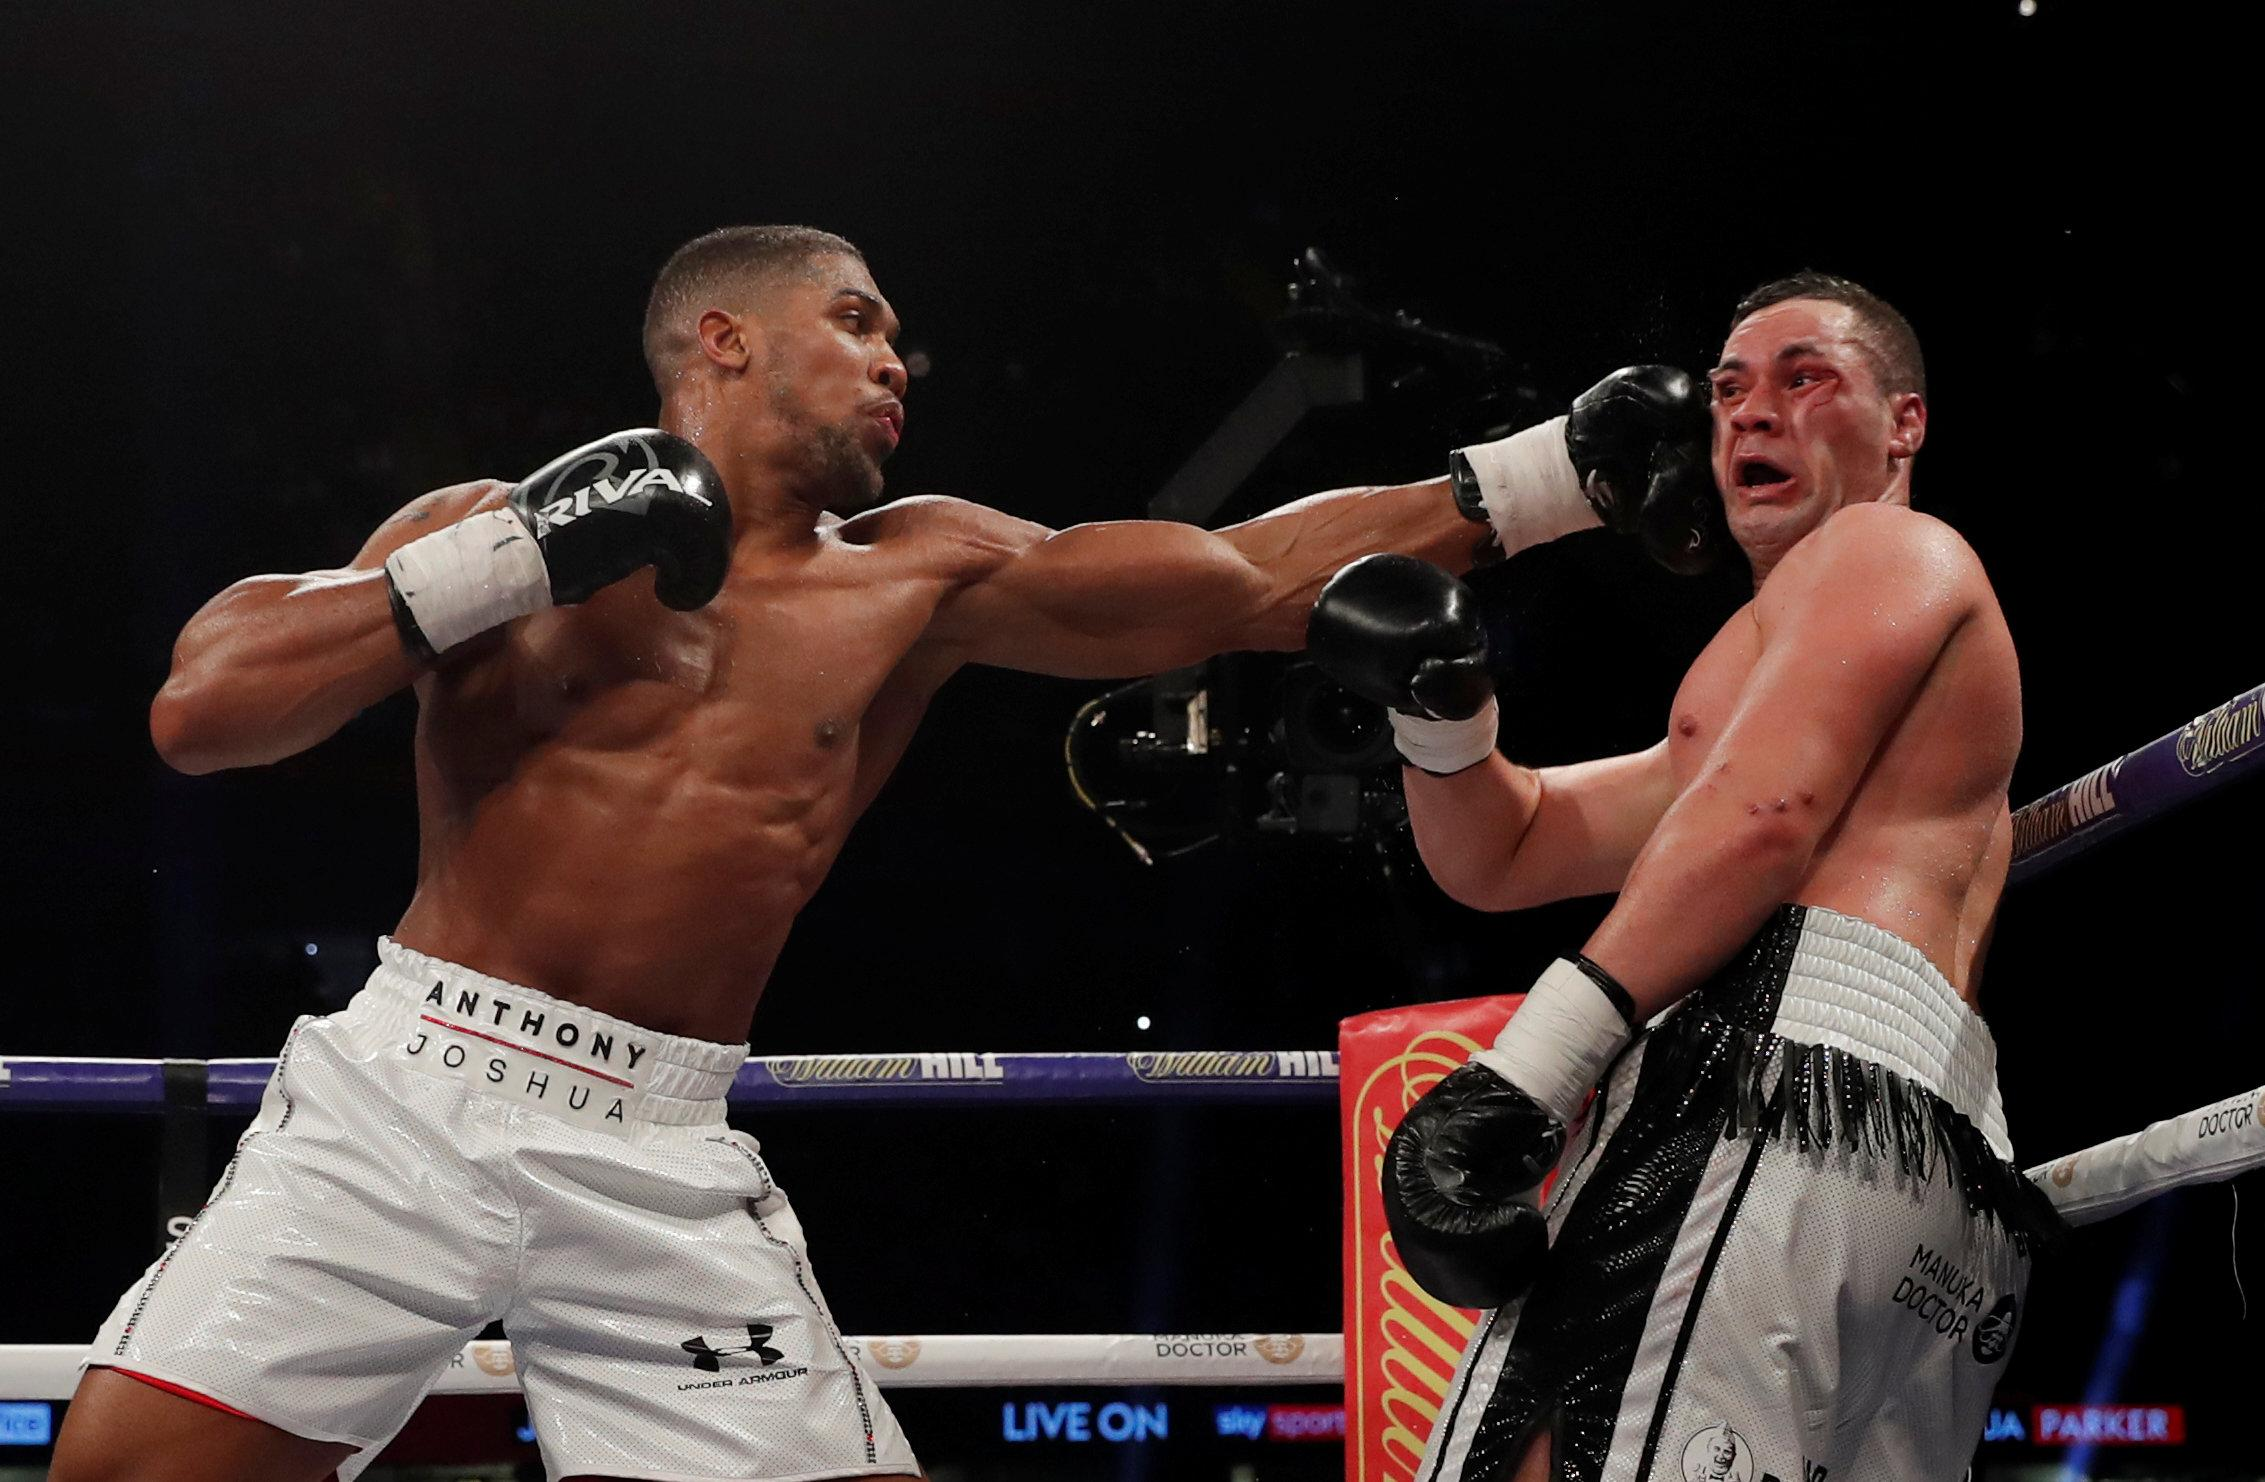 Joseph Parker (right) lost to Anthony Joshua back in March